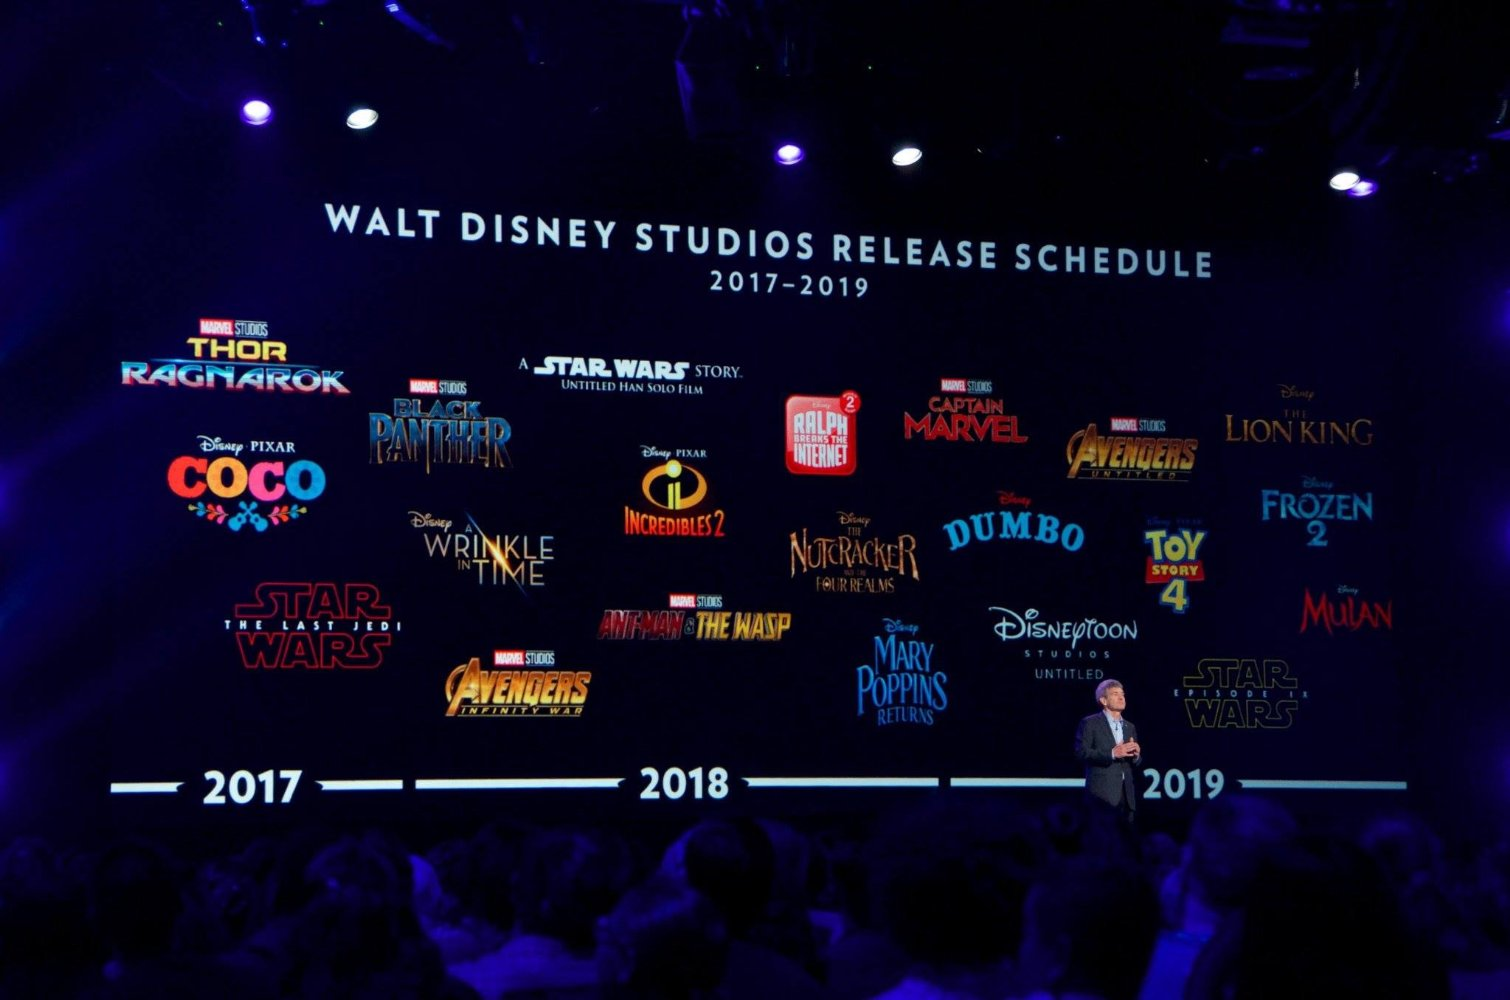 Disney movie release 2017-19